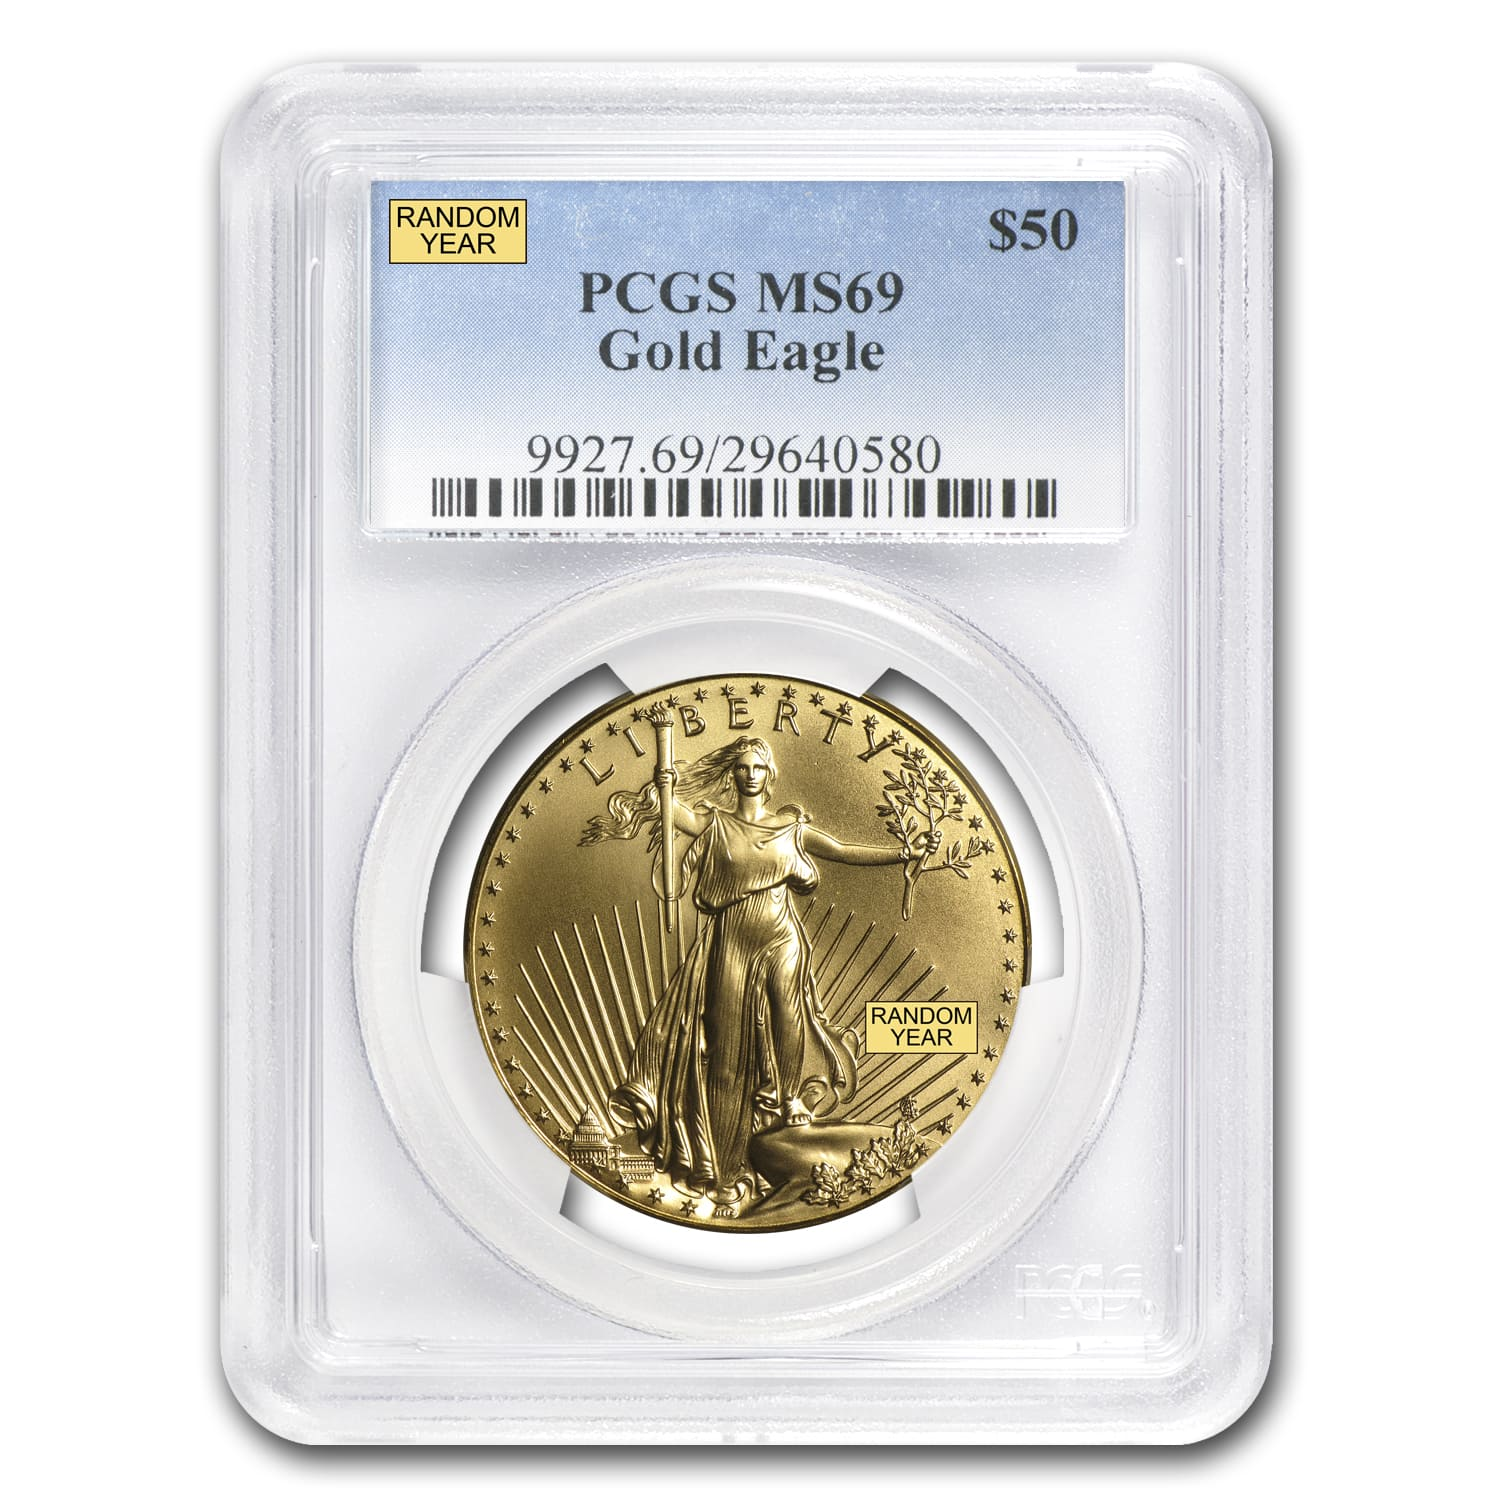 (Random Year) 1 oz Gold American Eagles MS-69 PCGS